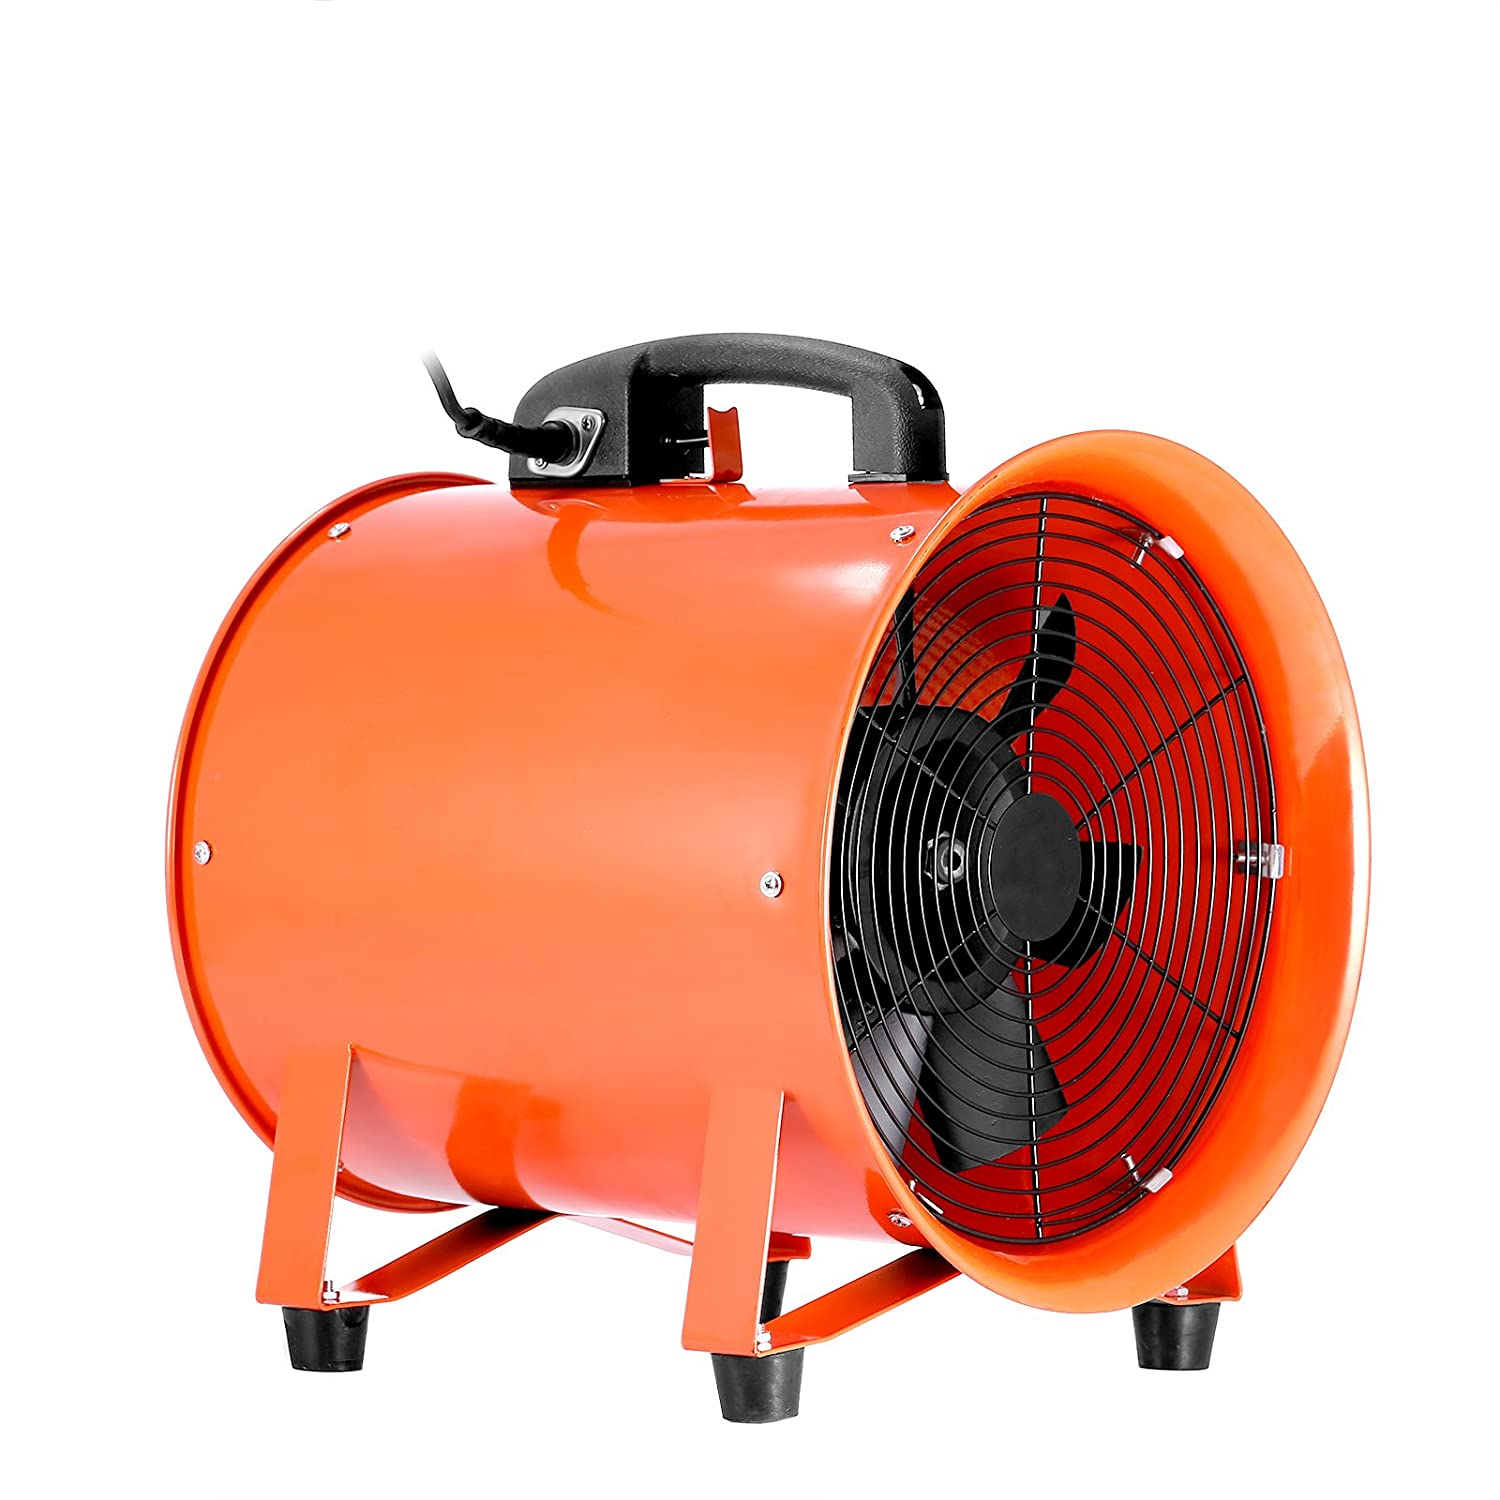 Superieur OrangeA Utility Blower 10 Inch 0.45HP 1520 CFM 3300 RPM Portable Ventilator  High Velocity Utility Blower Fan Multifunctional Ventilator Fume Extractor  ( 10 ...